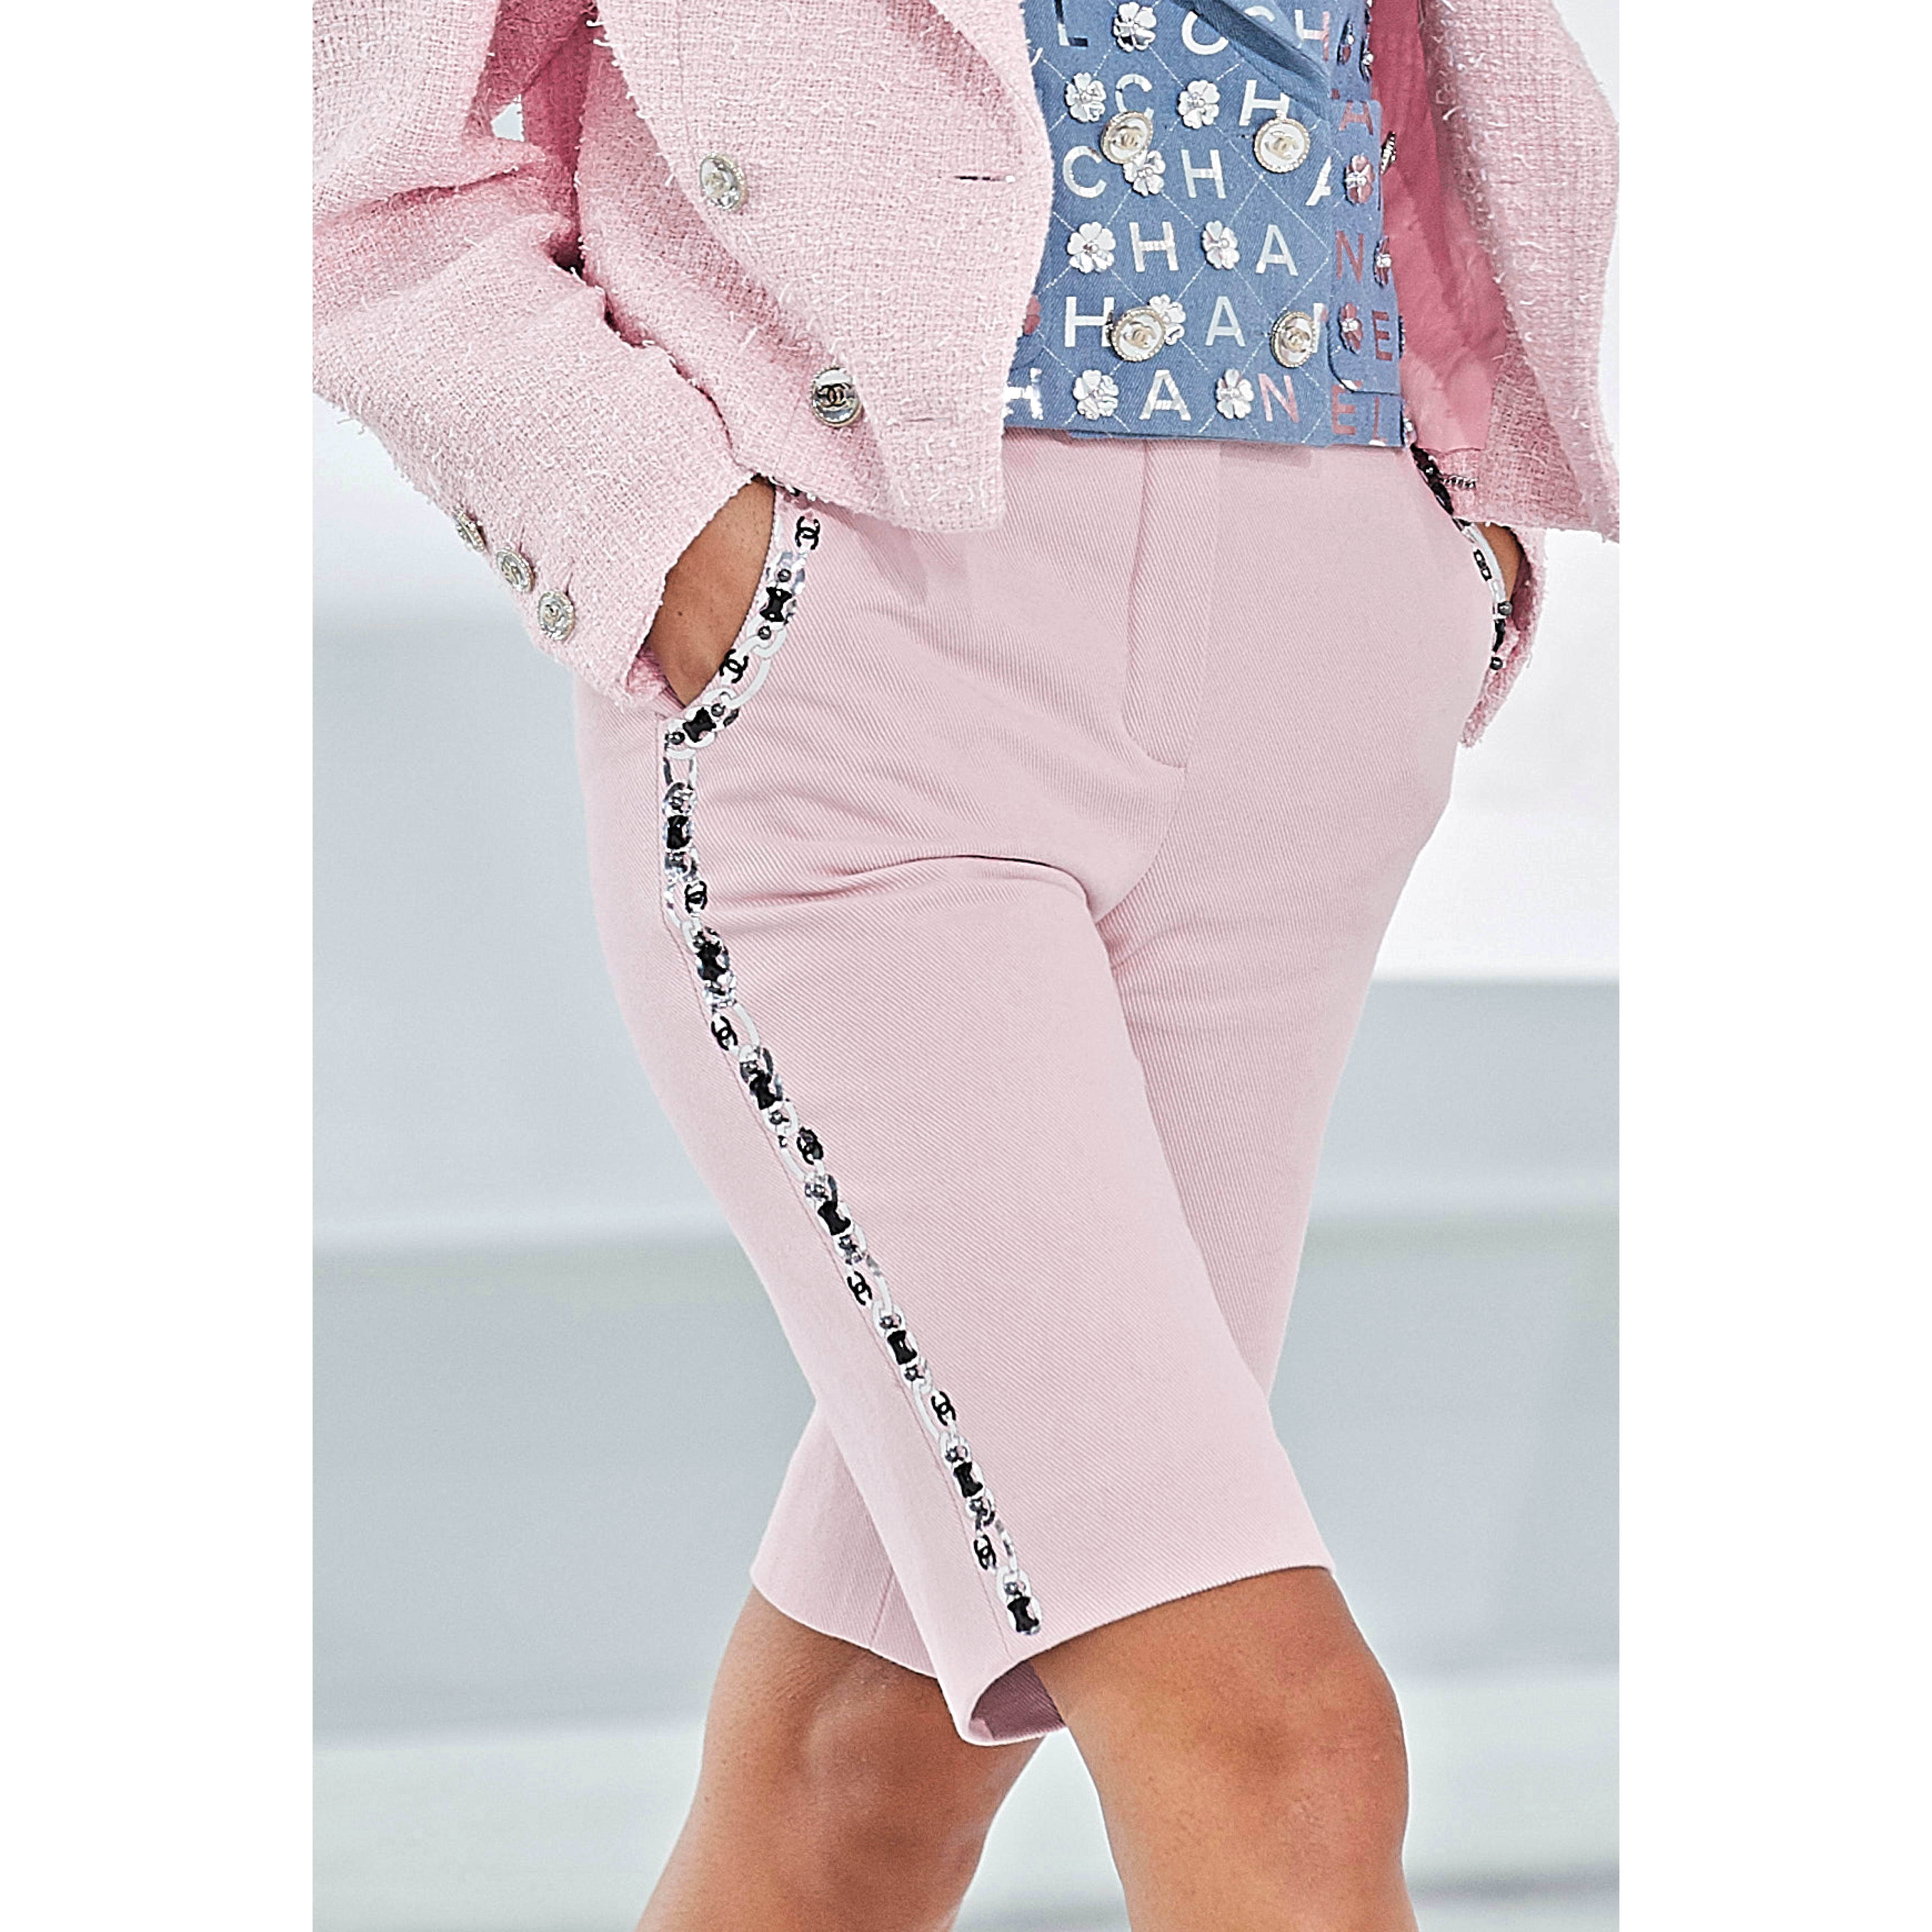 Bermuda Shorts - Light Pink - Embroidered Cotton Drill - CHANEL - Alternative view - see standard sized version